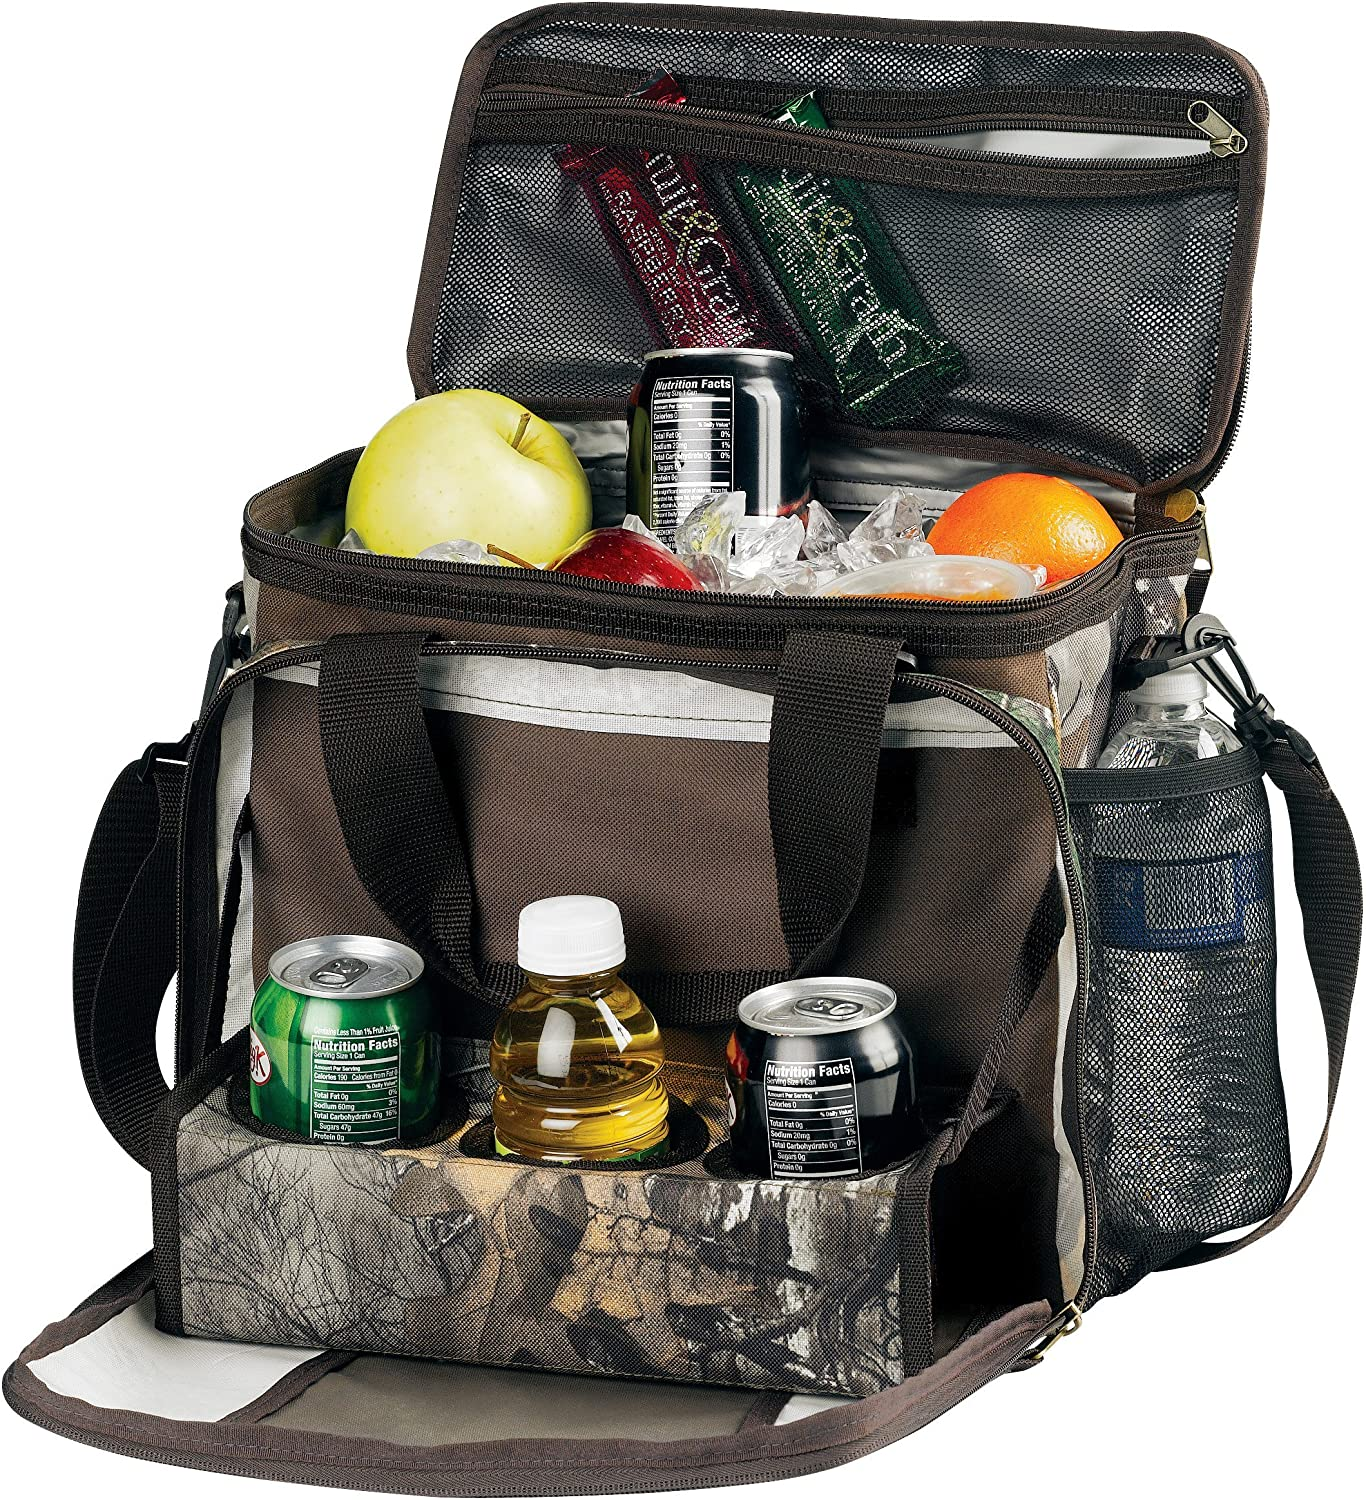 OAGear All In One Cooler RealTree APX CHCLAPX